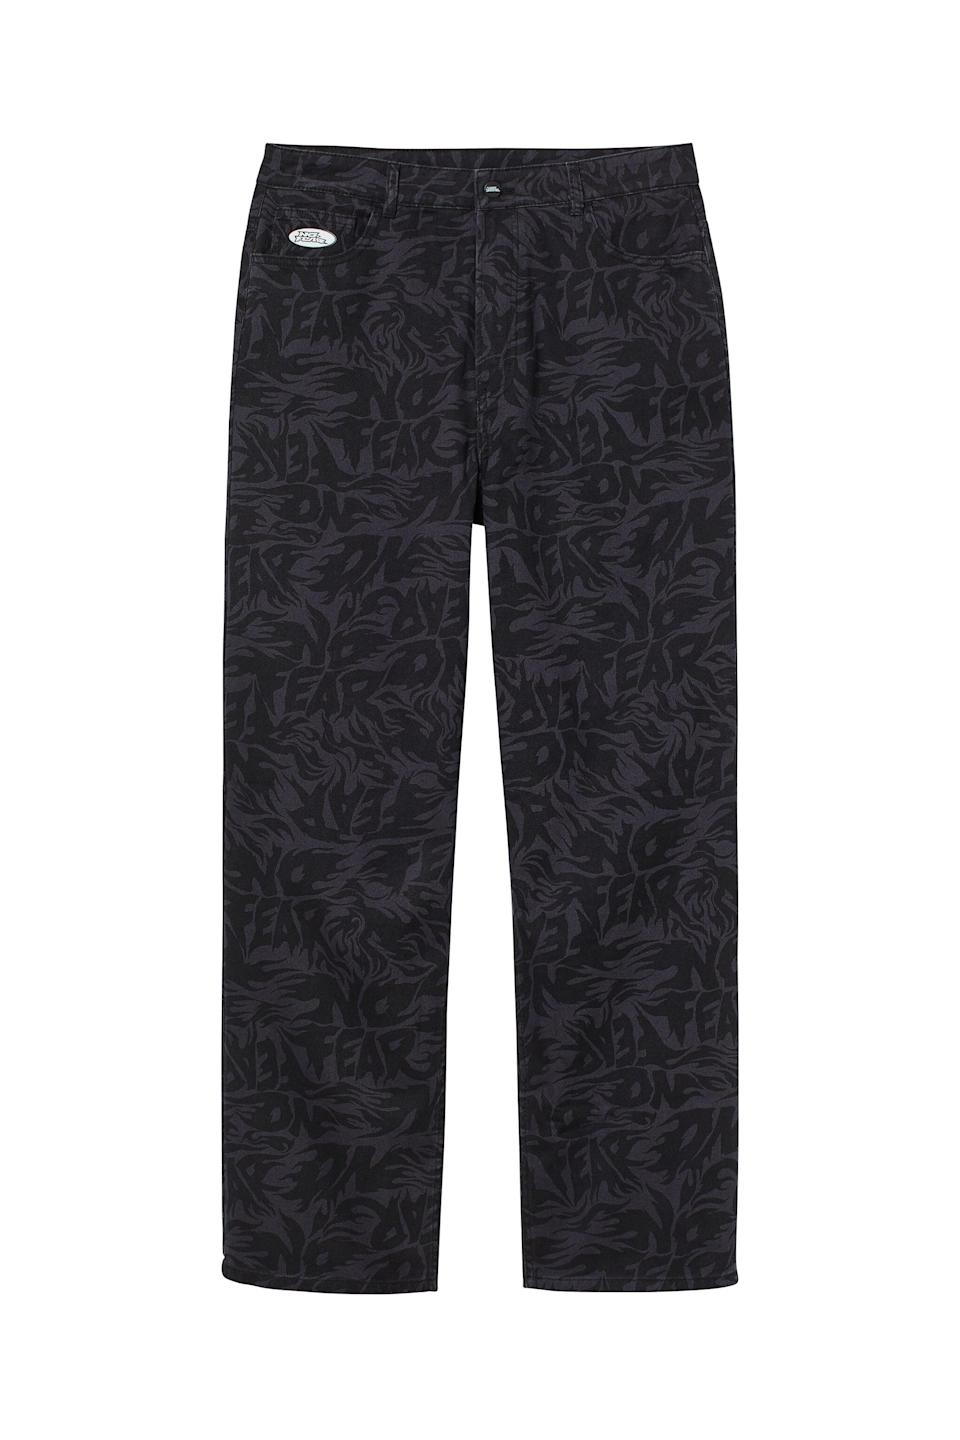 <p>Pair that vest with these nostalgic.<span>No Fear x H&amp;M Loose Fit Twill Pants</span> ($25). Thankfully, though, these pants are high waisted, which is the 2021 tweak we appreciate.</p>